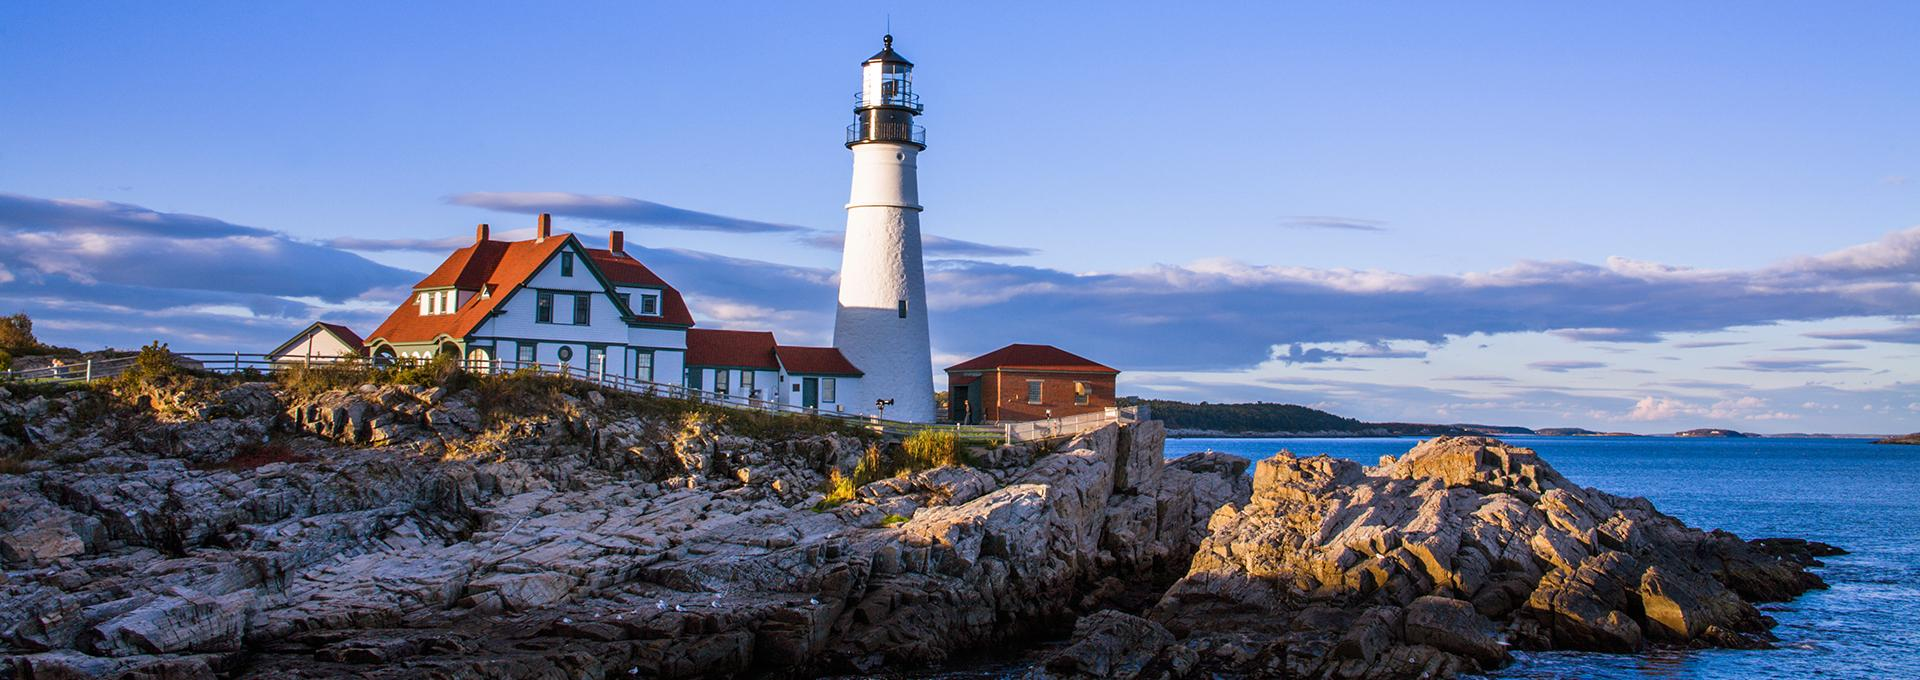 Scenic coastline with a view of a lighthouse in Maine